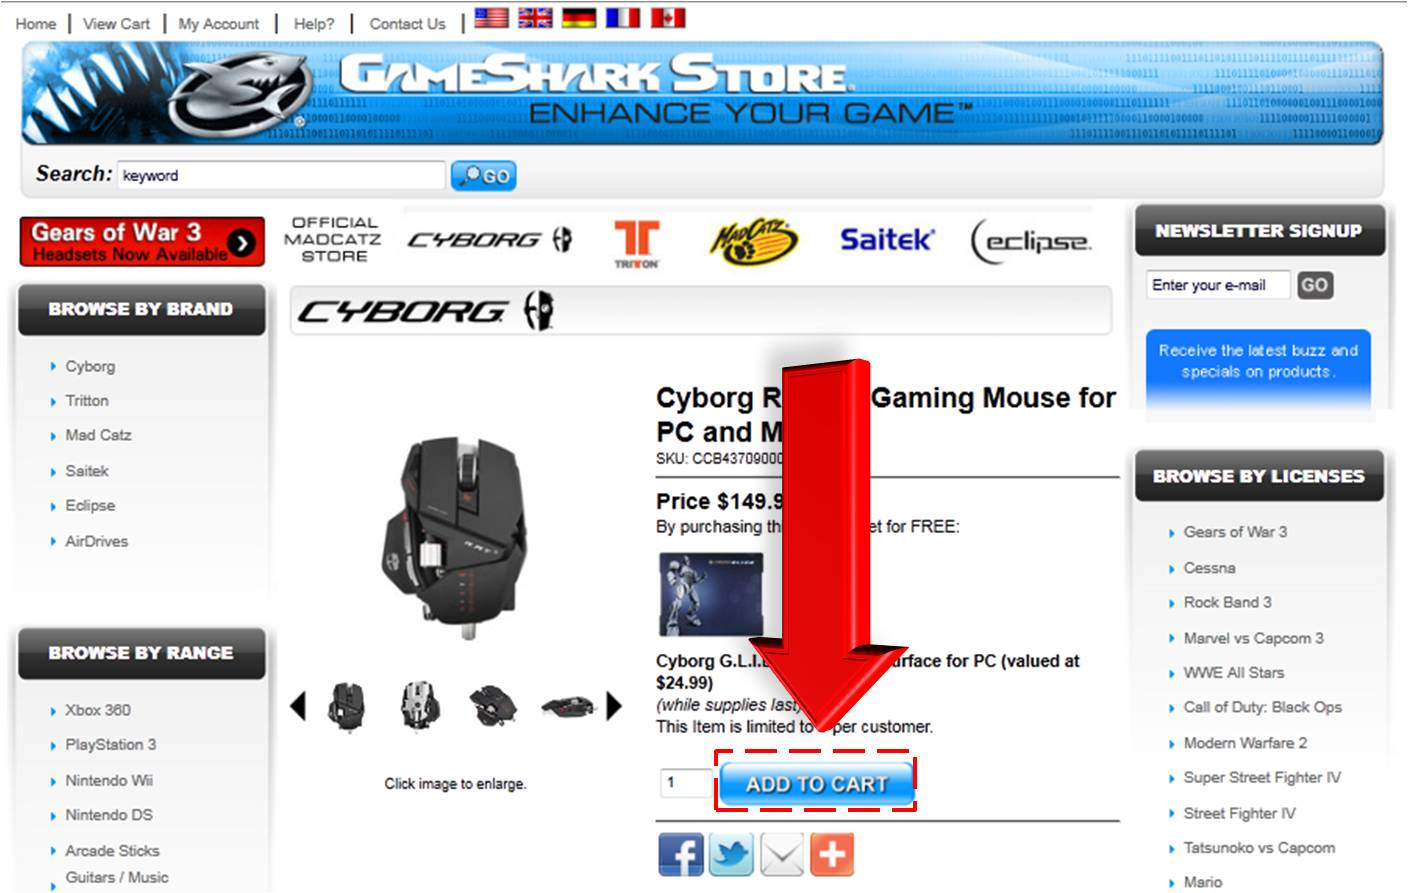 Gameshark store canada coupon code